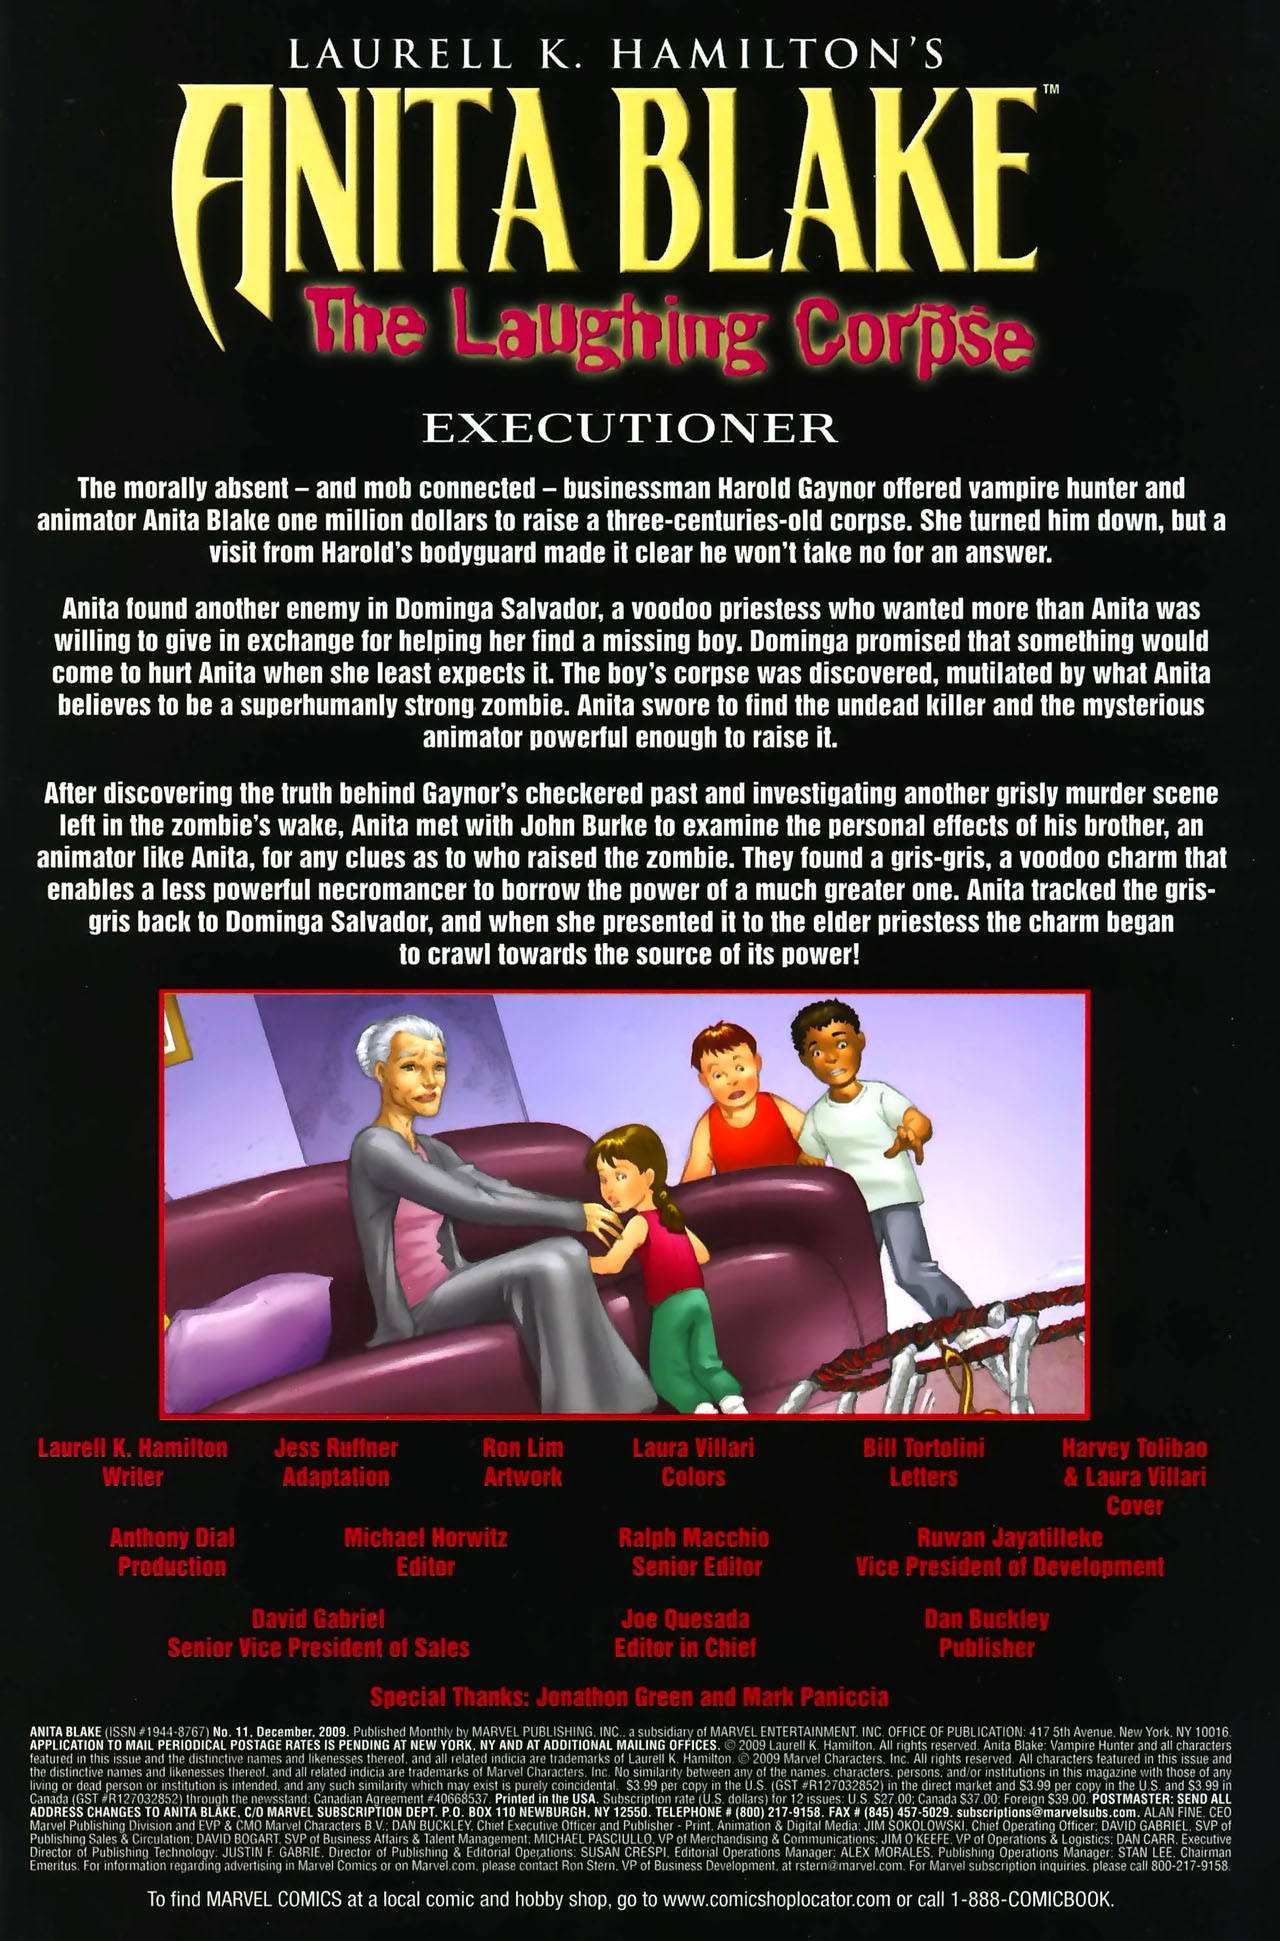 Read online Anita Blake: The Laughing Corpse - Executioner comic -  Issue #1 - 3